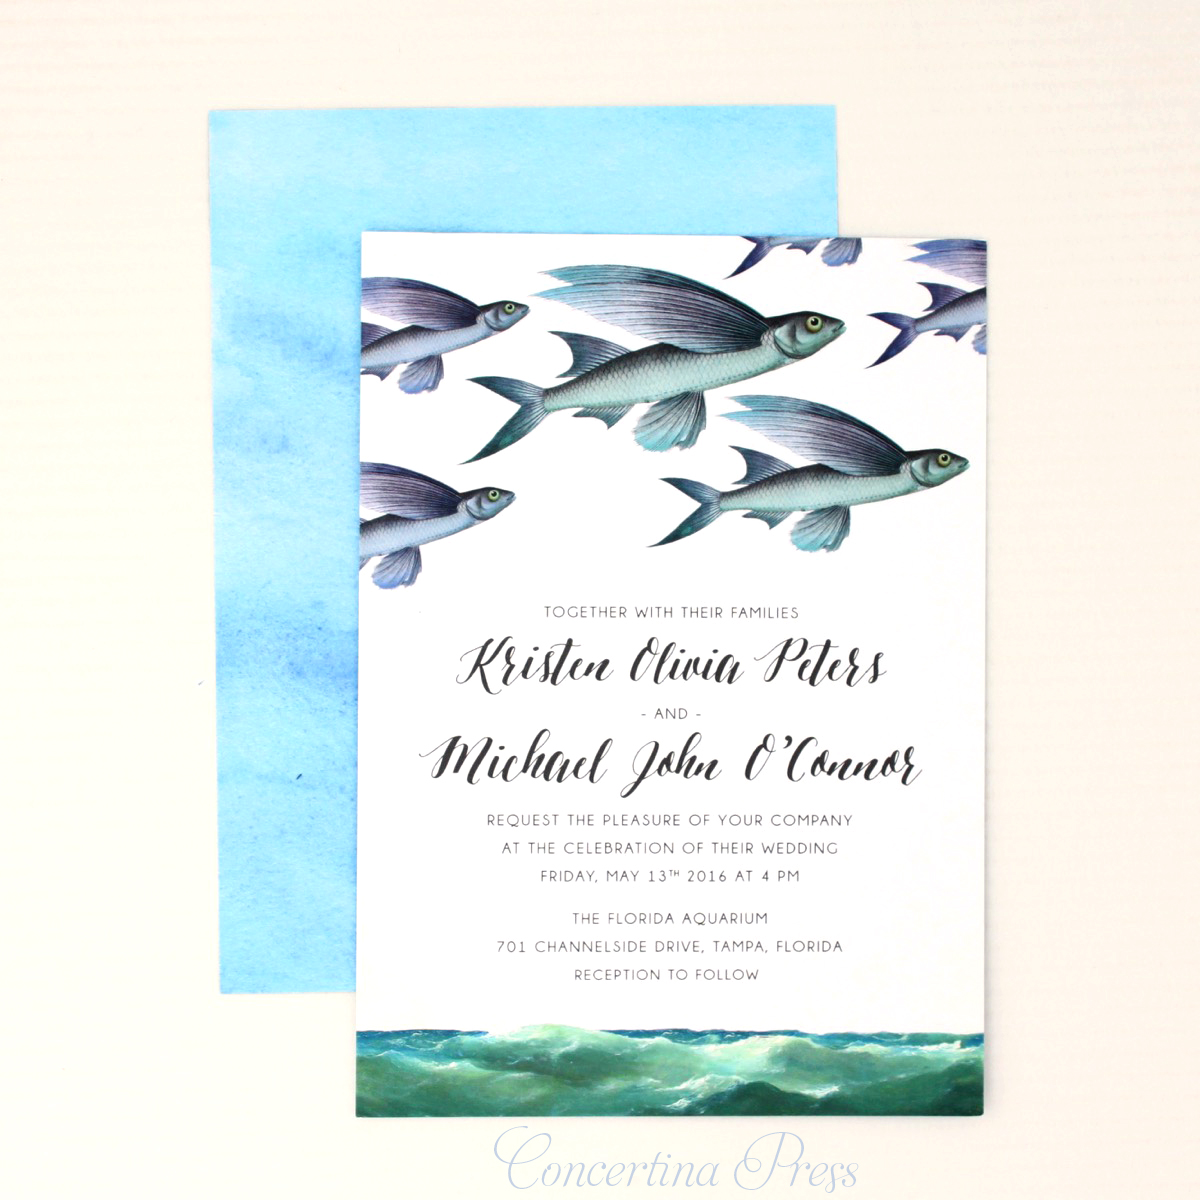 Boho Beach Wedding Invitations with Flying Fish from Concertina Press